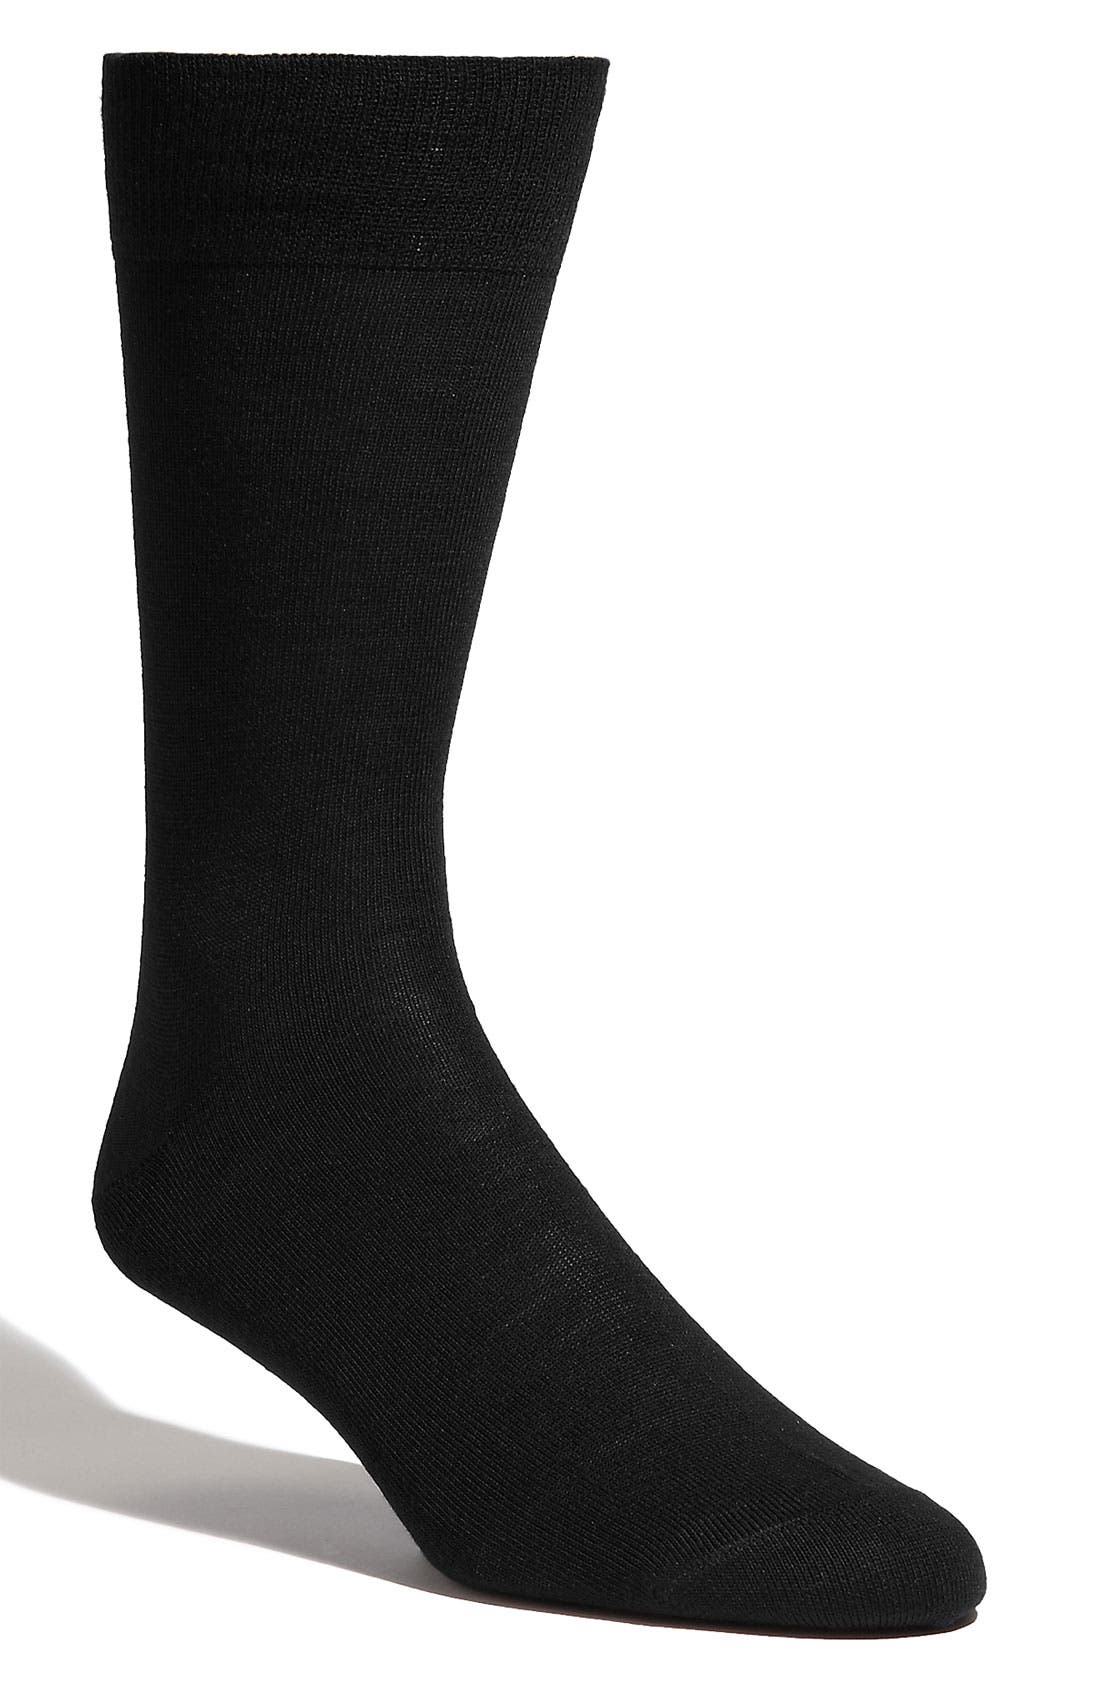 Lorenzo Uomo Merino Wool Blend Socks (Men) (3 for $30)